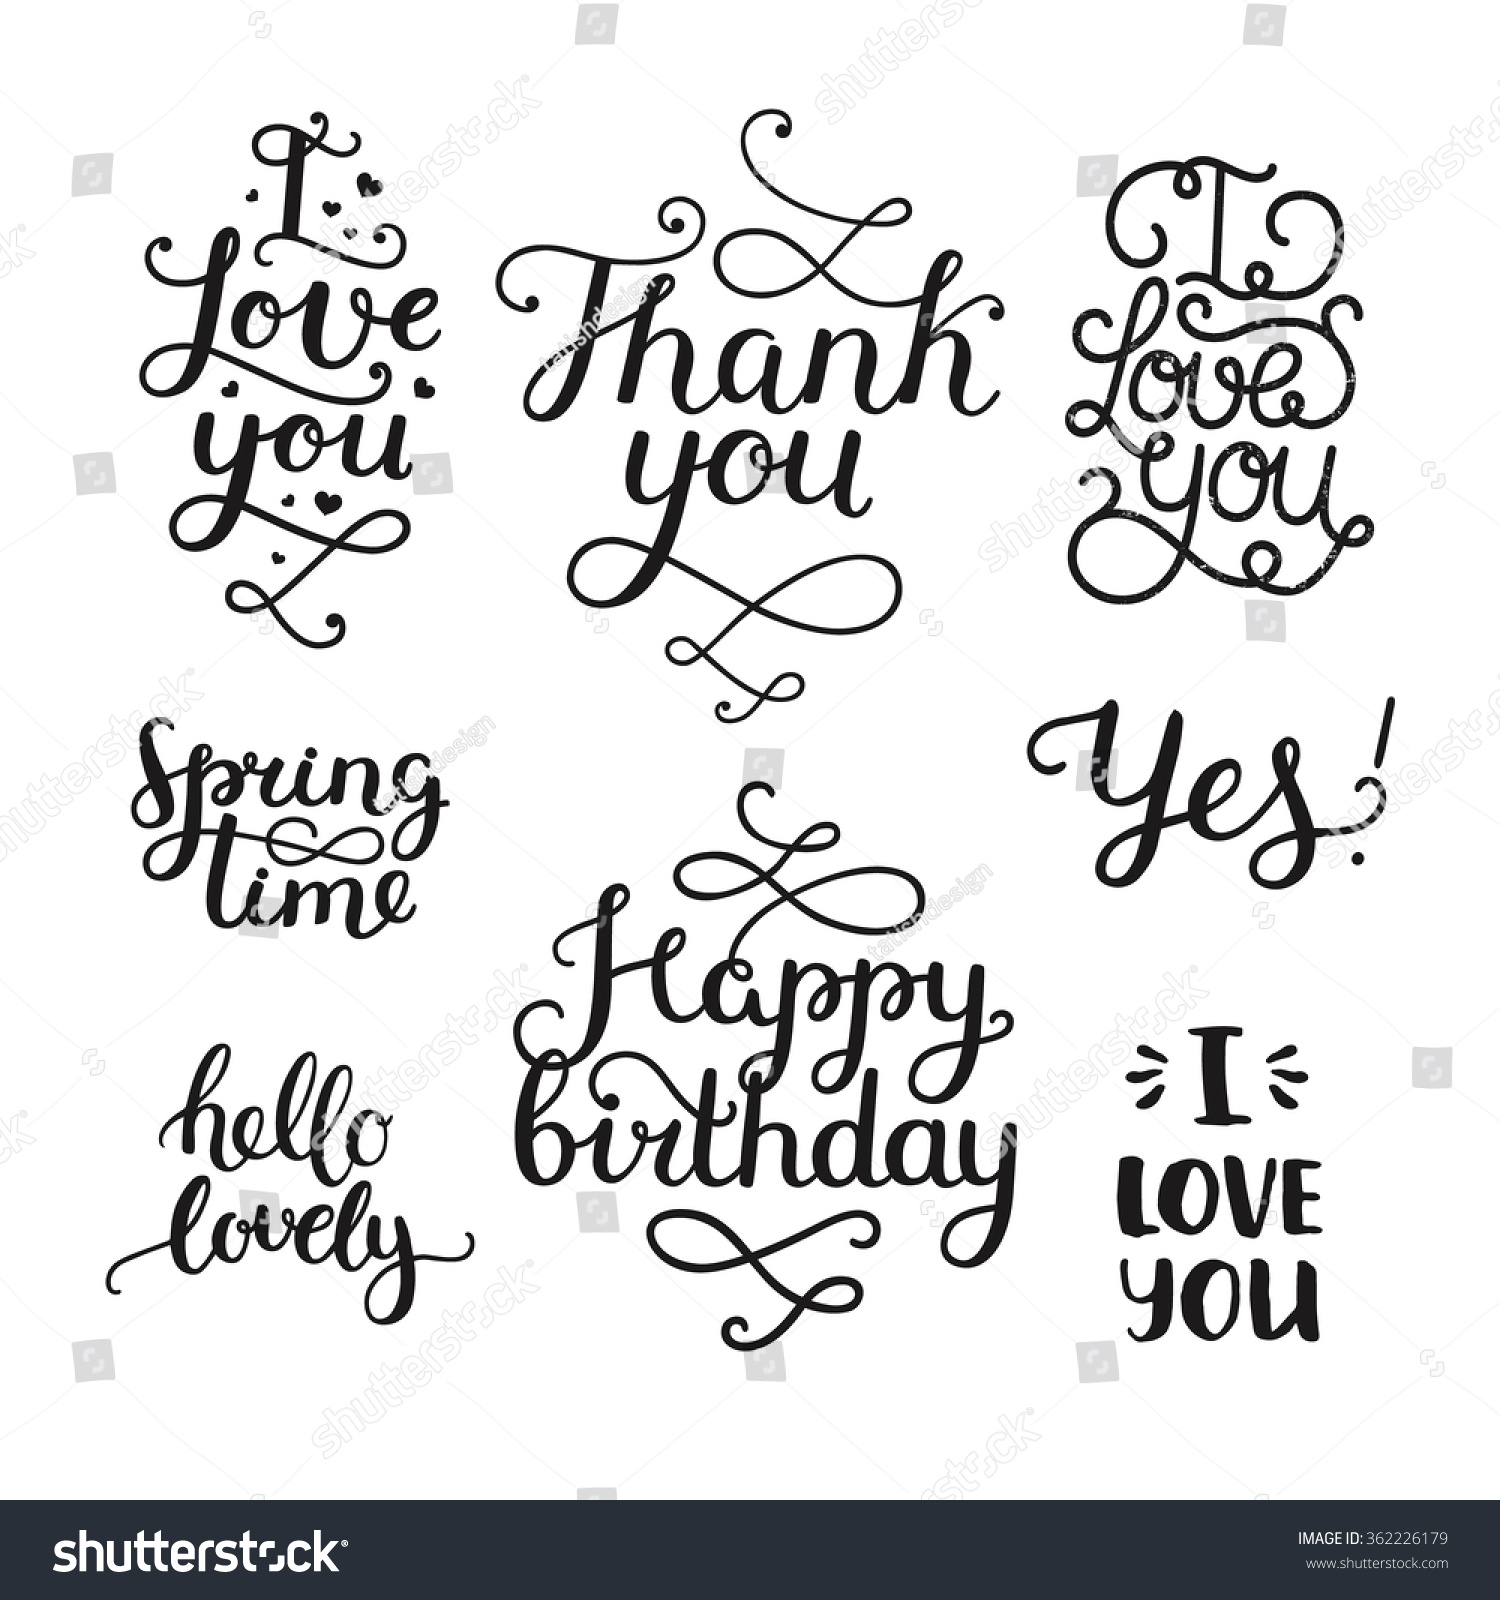 Love You Thank You Quotes Vector Photo Overlays Handdrawn Lettering Collection Stock Vector